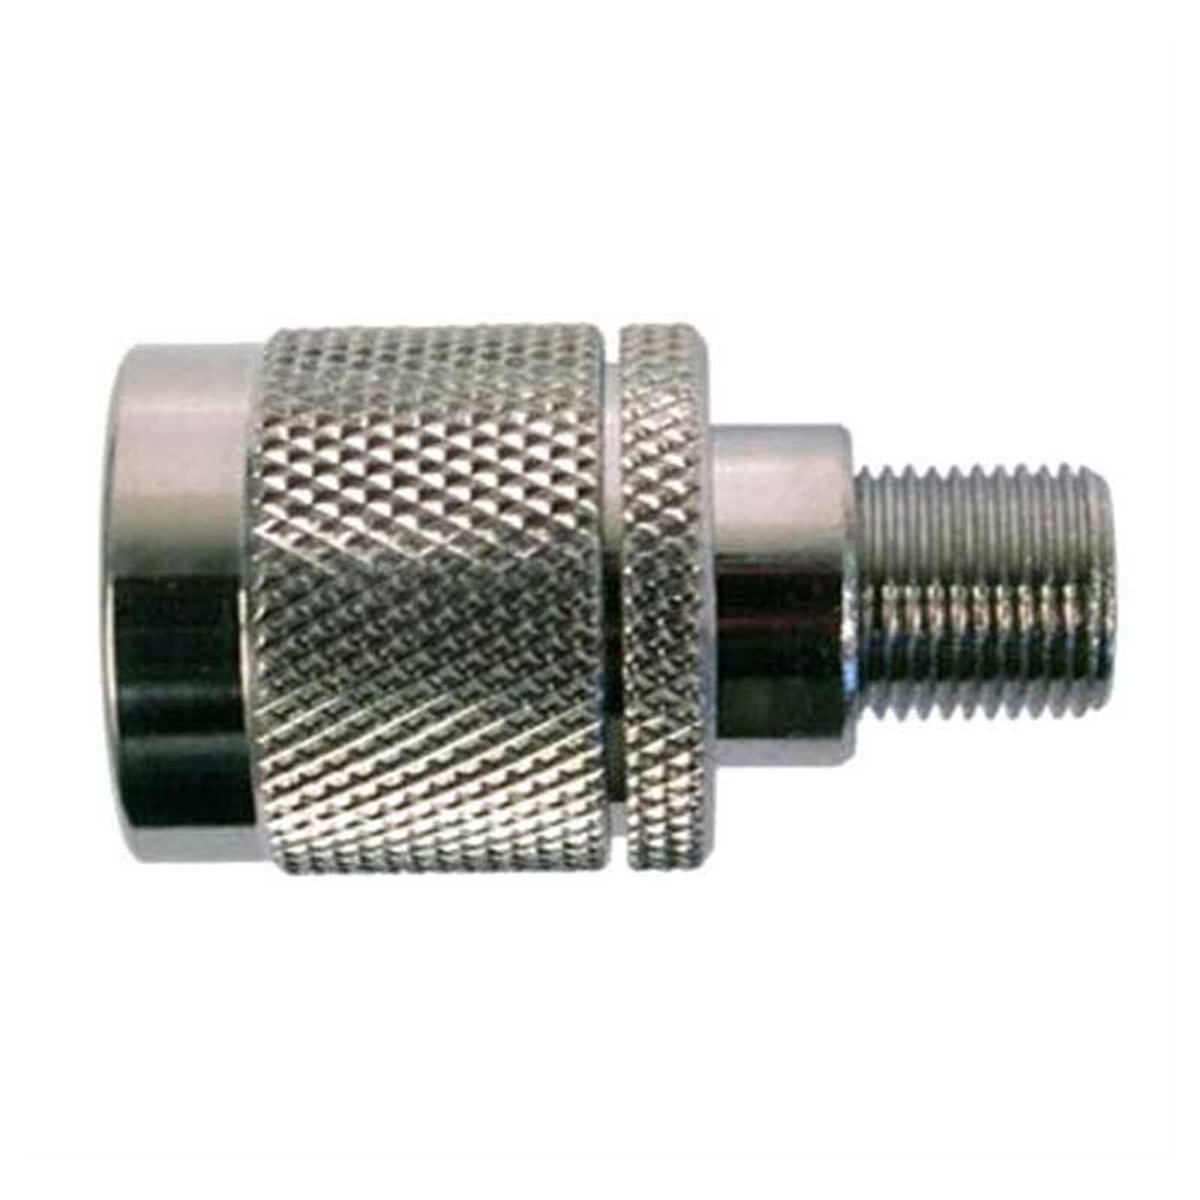 weBoost (Wilson) 971128 N-Male to F-Female Connector